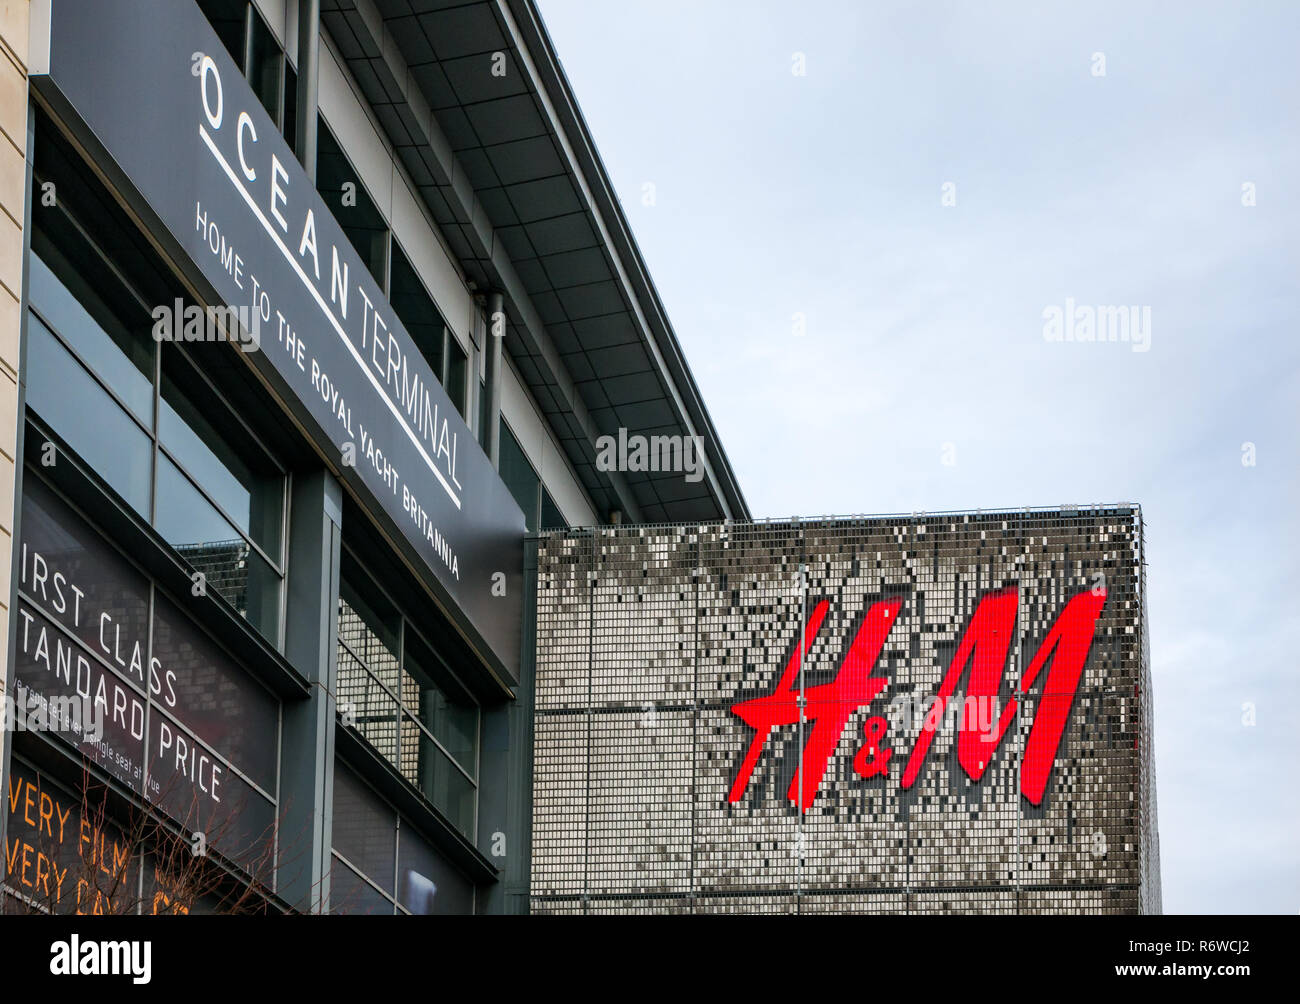 H&M clothing store large logo on building front, Ocean terminal shopping centre, Leith, Edinburgh, Scotland, UK - Stock Image